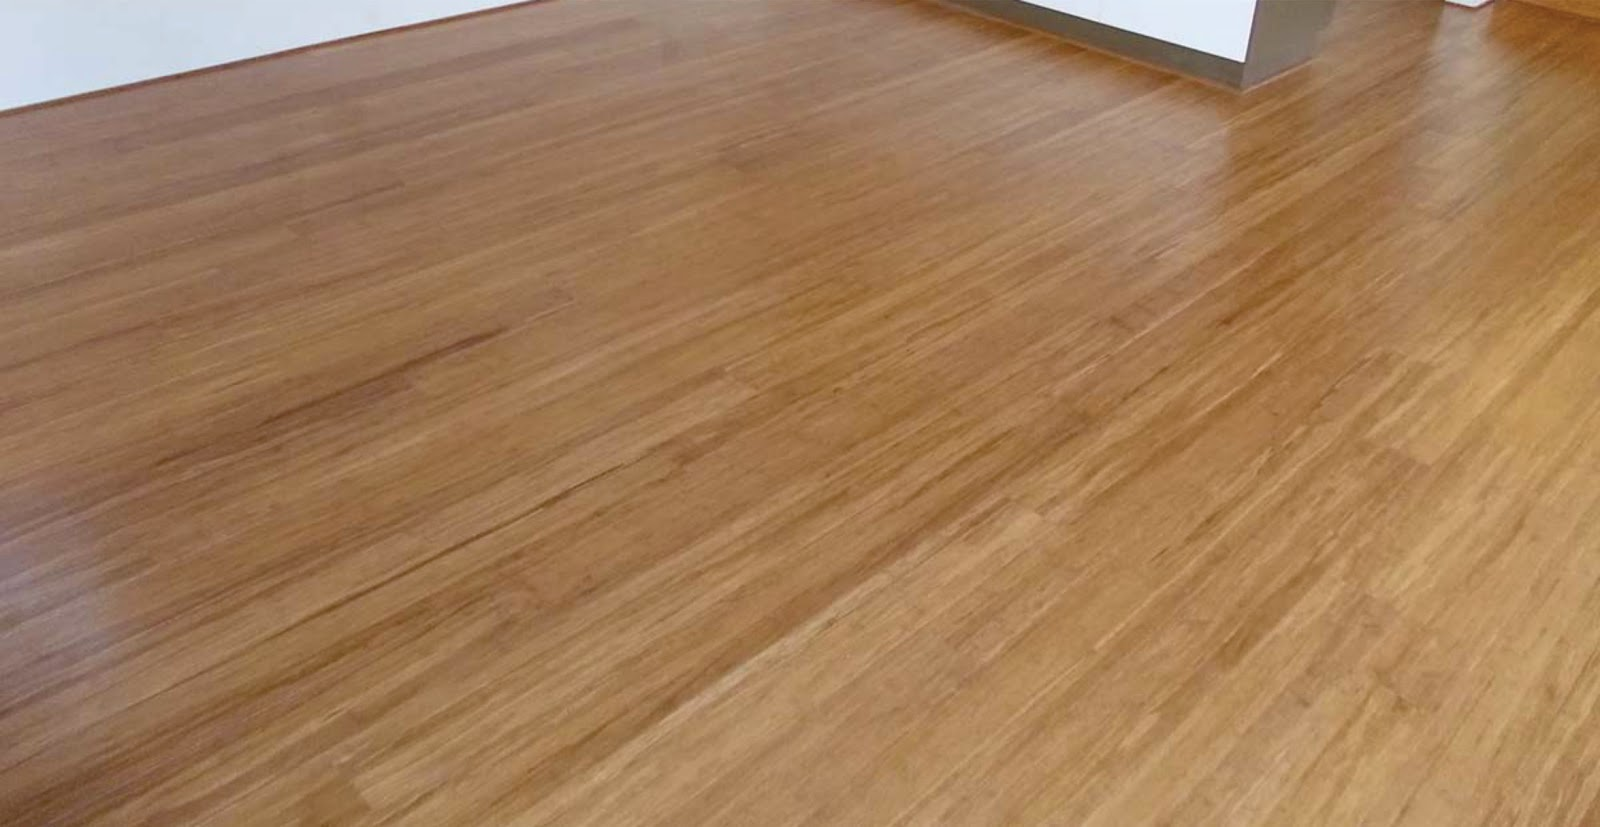 Bamboo grove photo bamboo hardwood flooring for Hardwood wood flooring